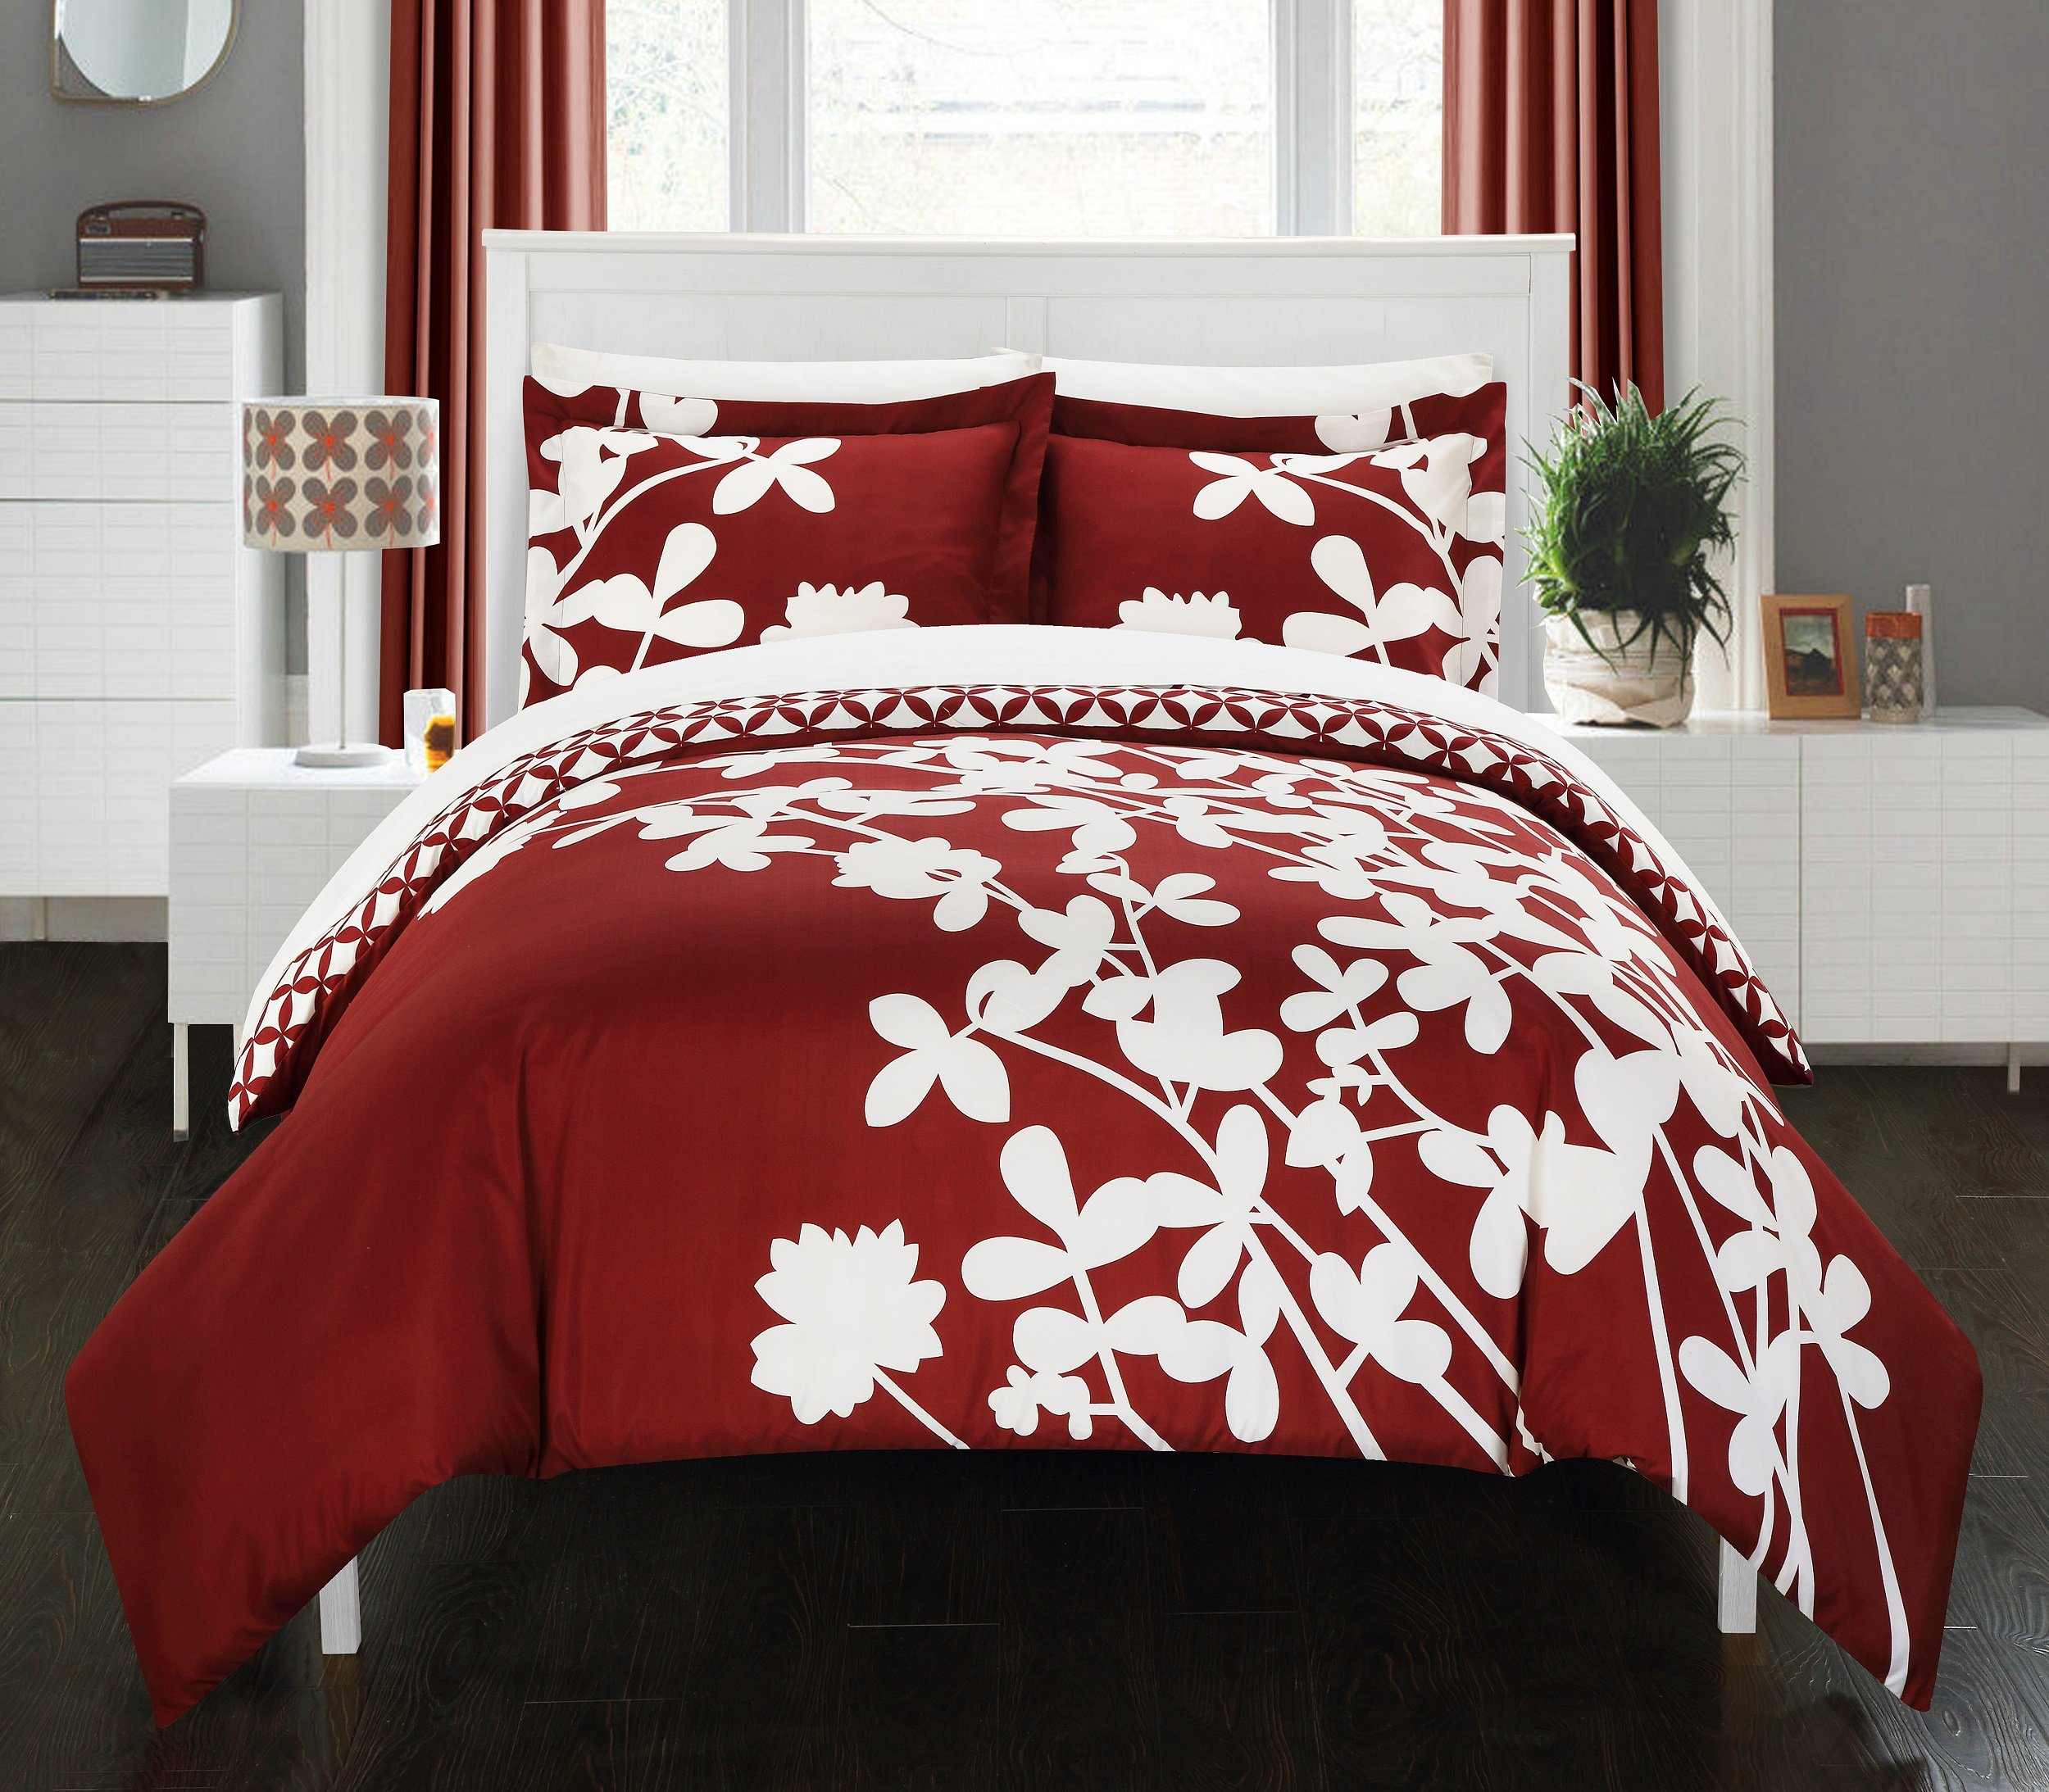 Chic Home 3 Piece Calla Lily Reversible Large Scale Floral Design Printed with Diamond Pattern Reverse Duvet Cover Set, King, Maroon Red